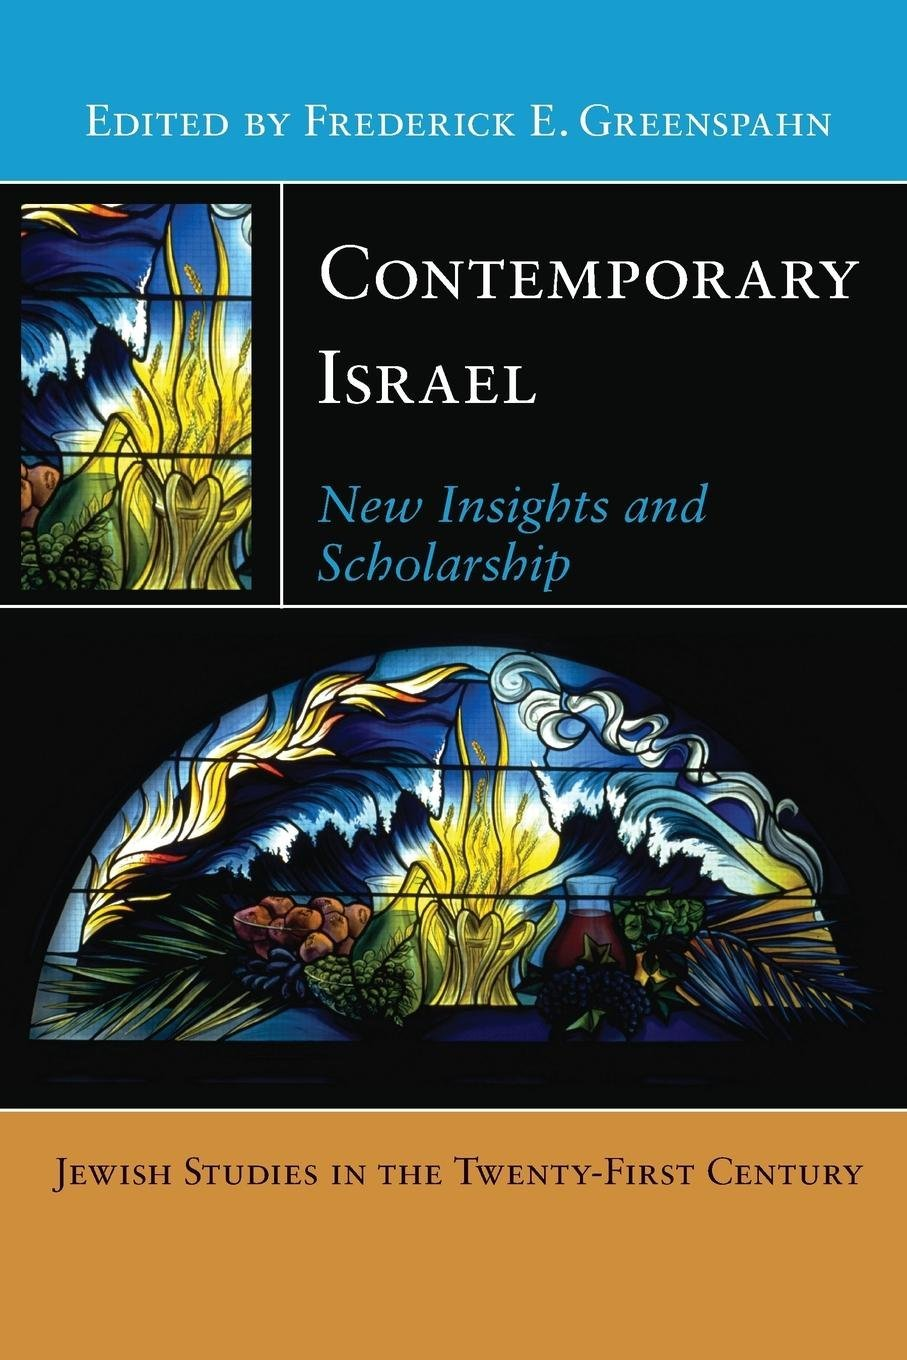 Contemporary Israel: New Insights and Scholarship (Jewish Studies in the Twenty-First Century) PDF